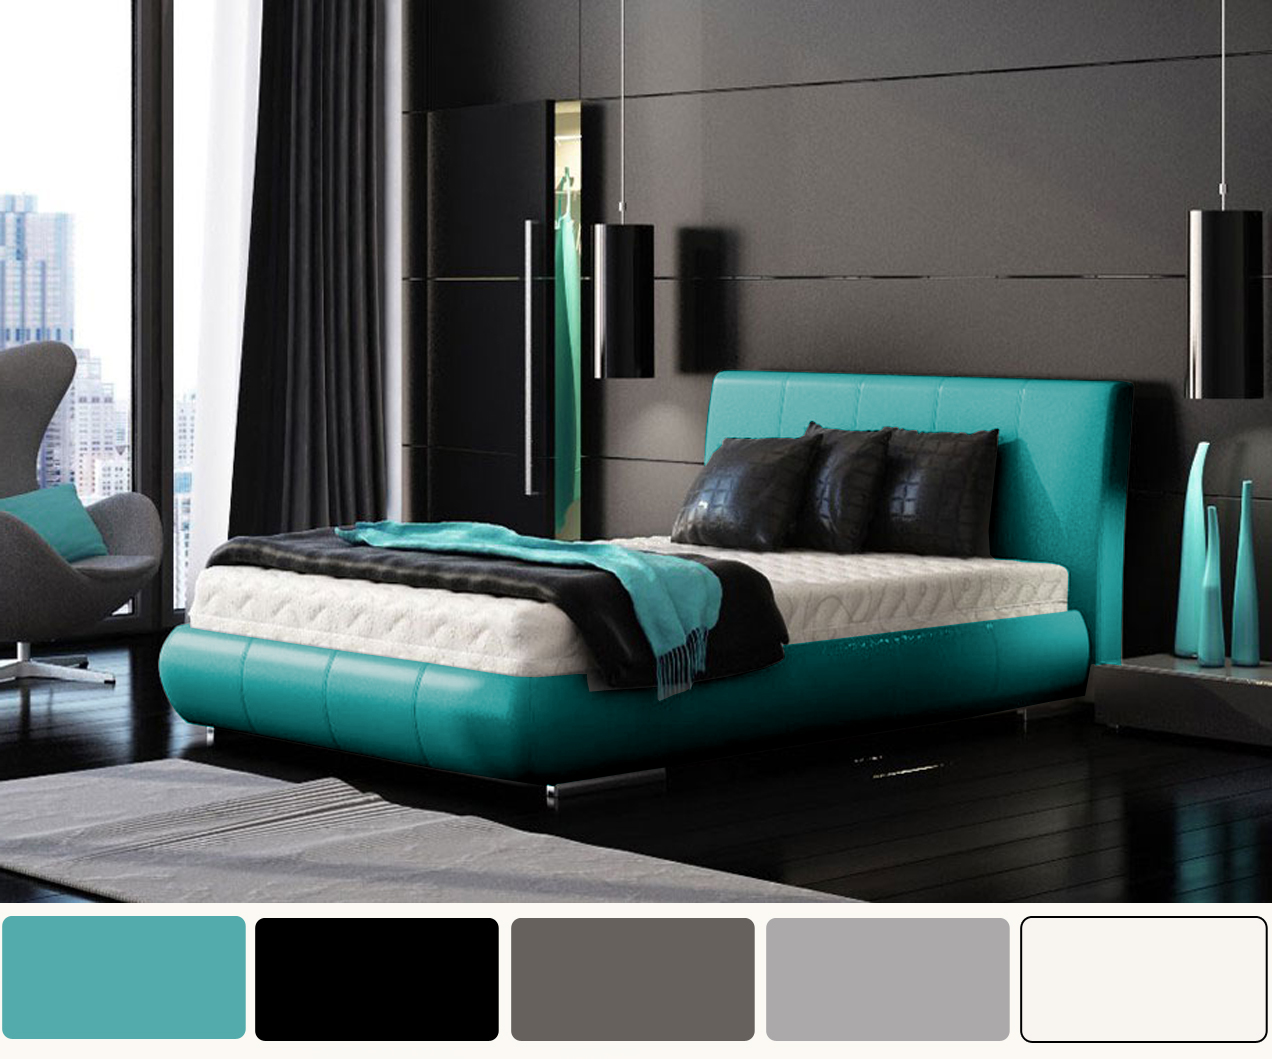 Turquoise And White Pearl Bedroom Design - Native Home ...